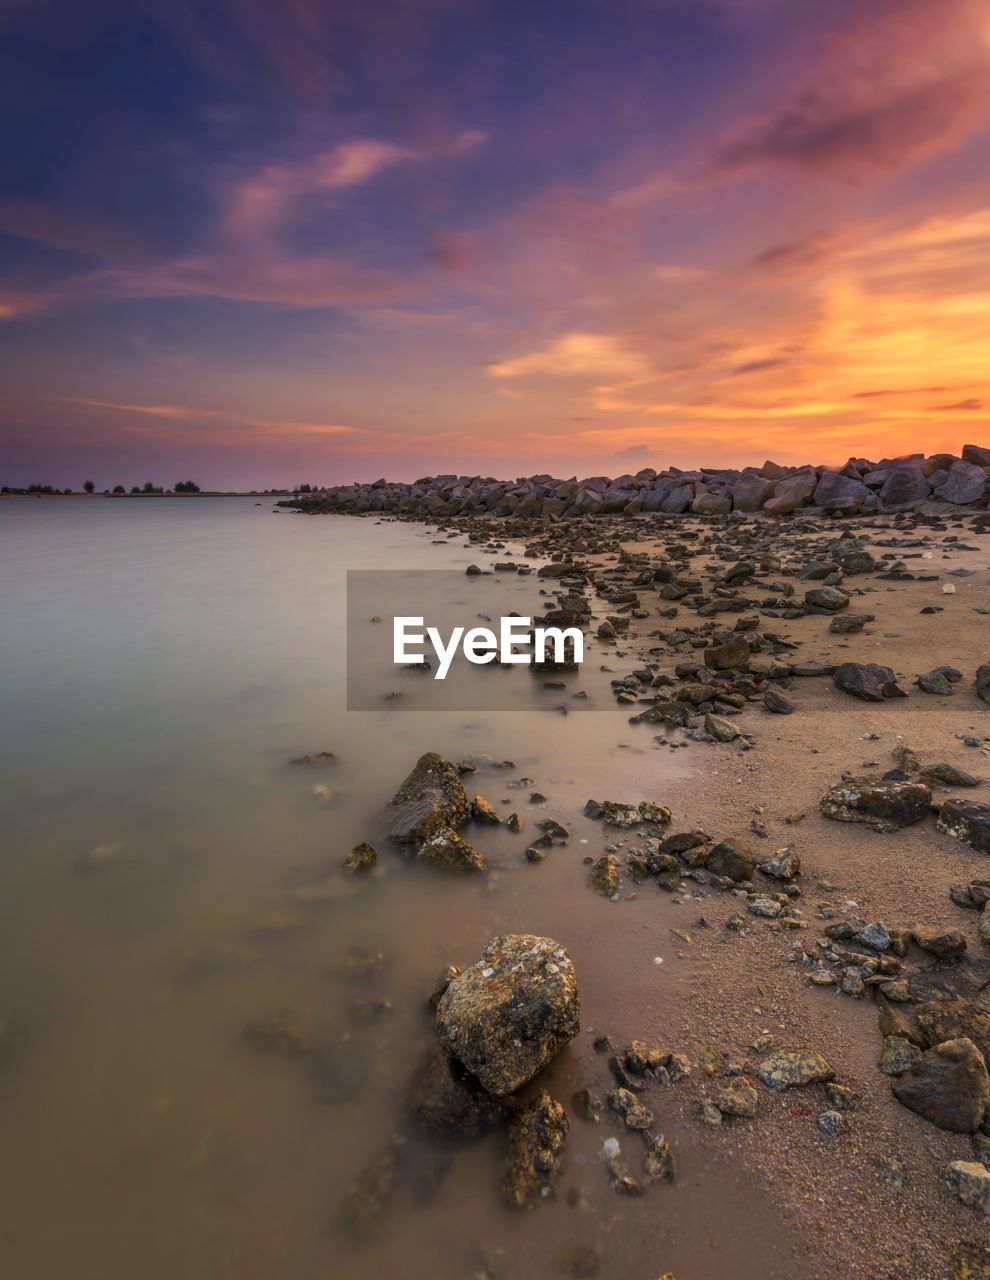 sunset, sky, beauty in nature, cloud - sky, scenics - nature, tranquility, water, tranquil scene, orange color, land, sea, nature, beach, no people, idyllic, rock, solid, rock - object, non-urban scene, outdoors